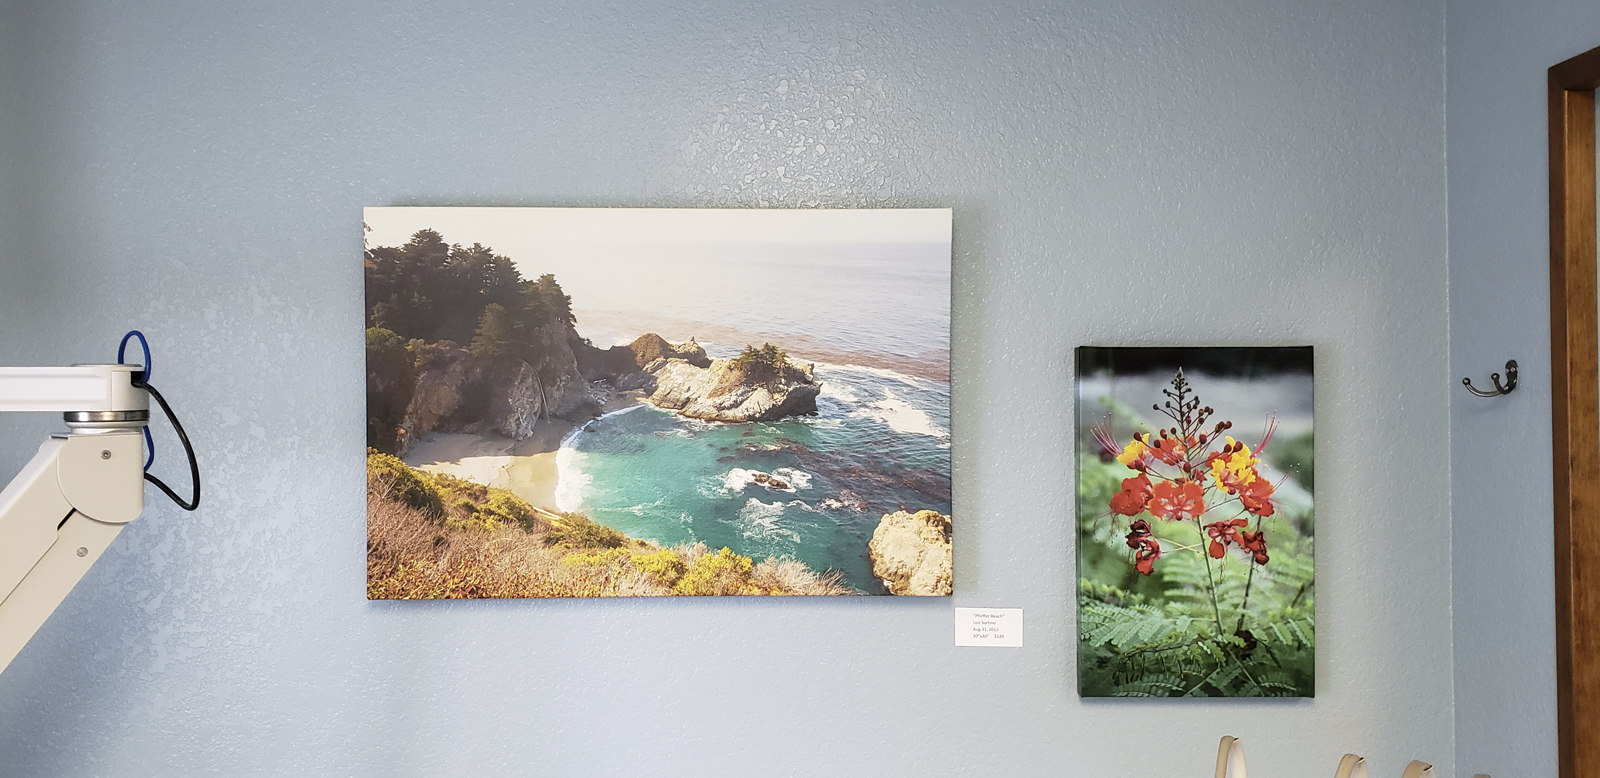 Los Osos Family Dentistry Ongoing Exhibit Art for Sale